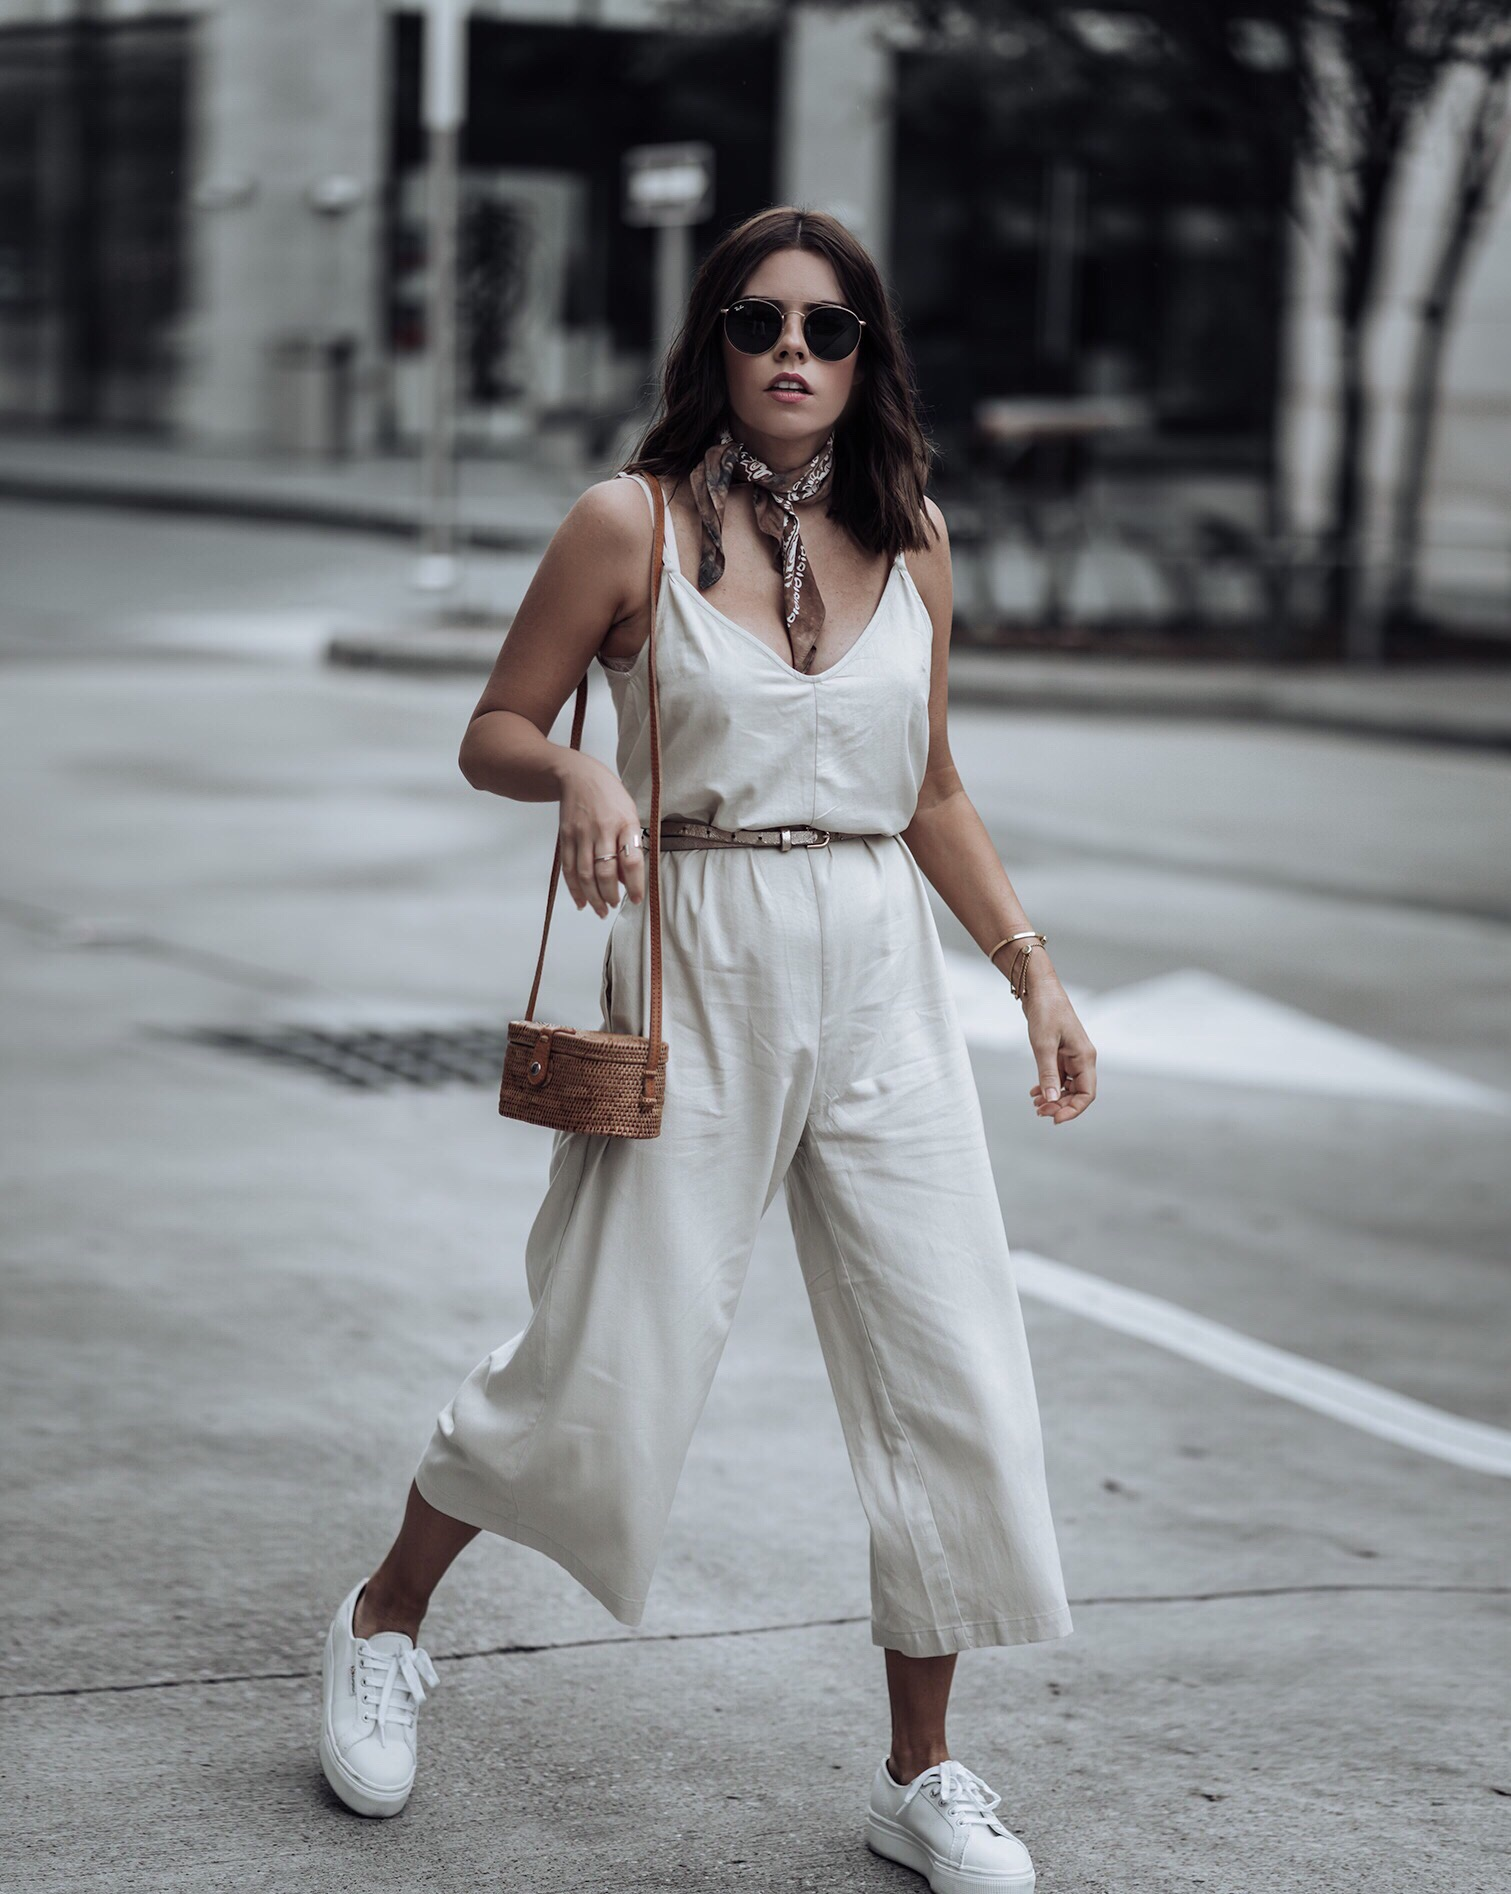 Friday feels | Jumpsuit #urbanoutfitters #streetstyle #sneakeroutfits #liketkit